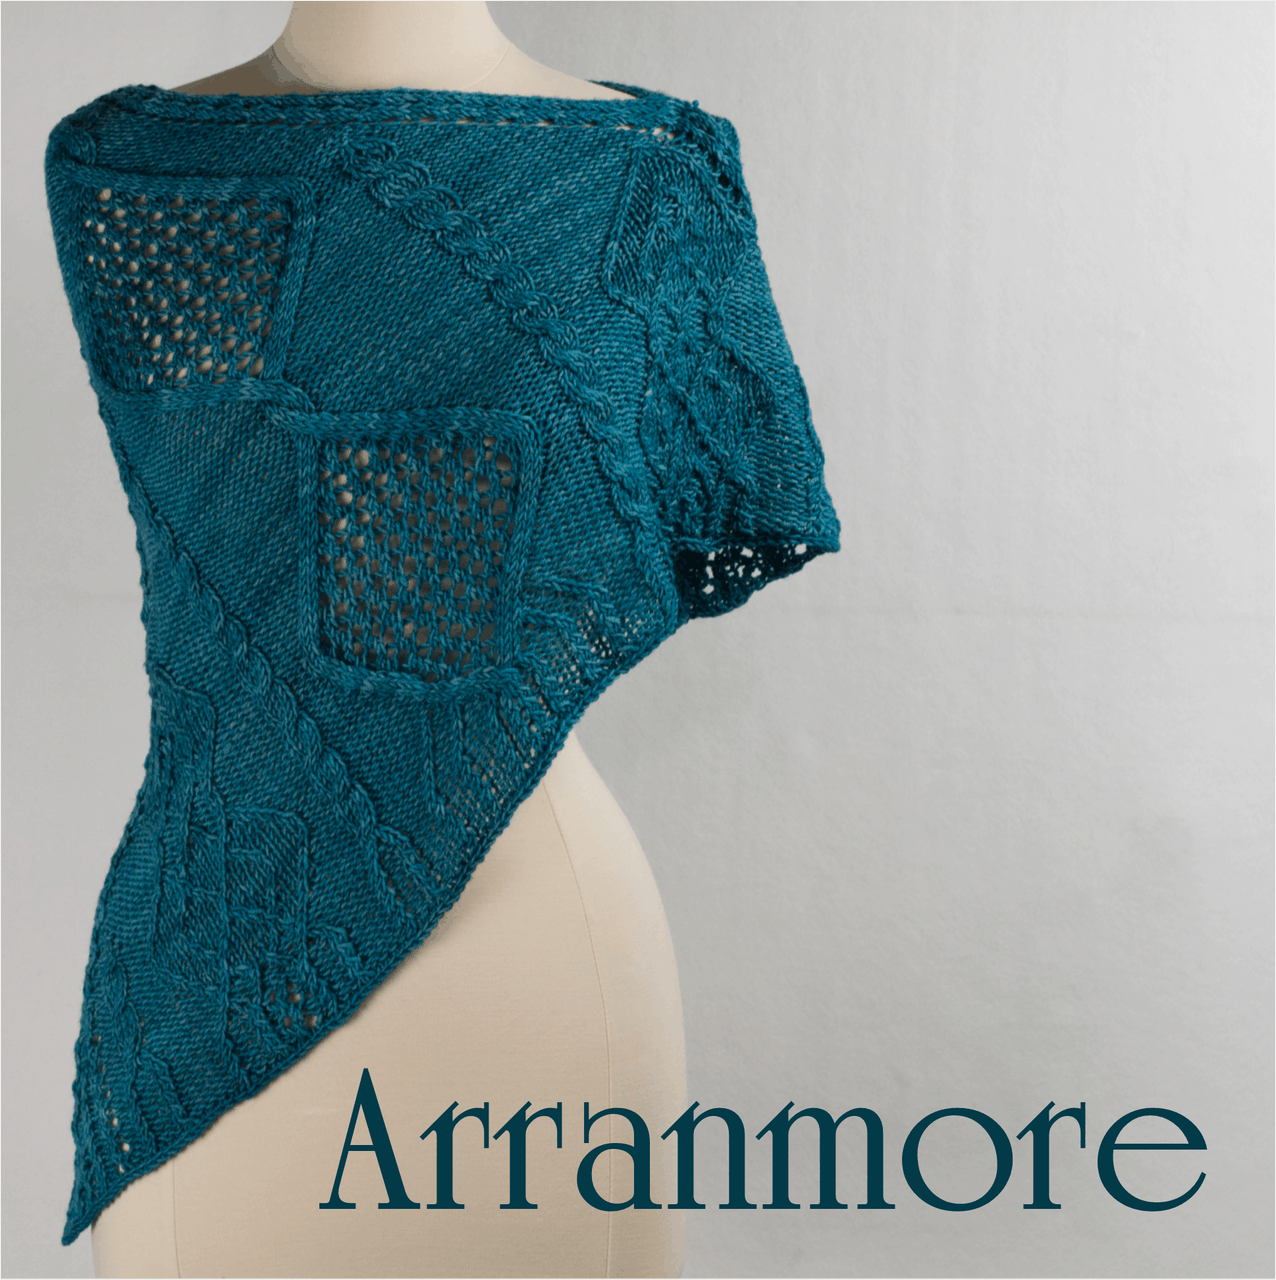 Arranmore Triangle Kit